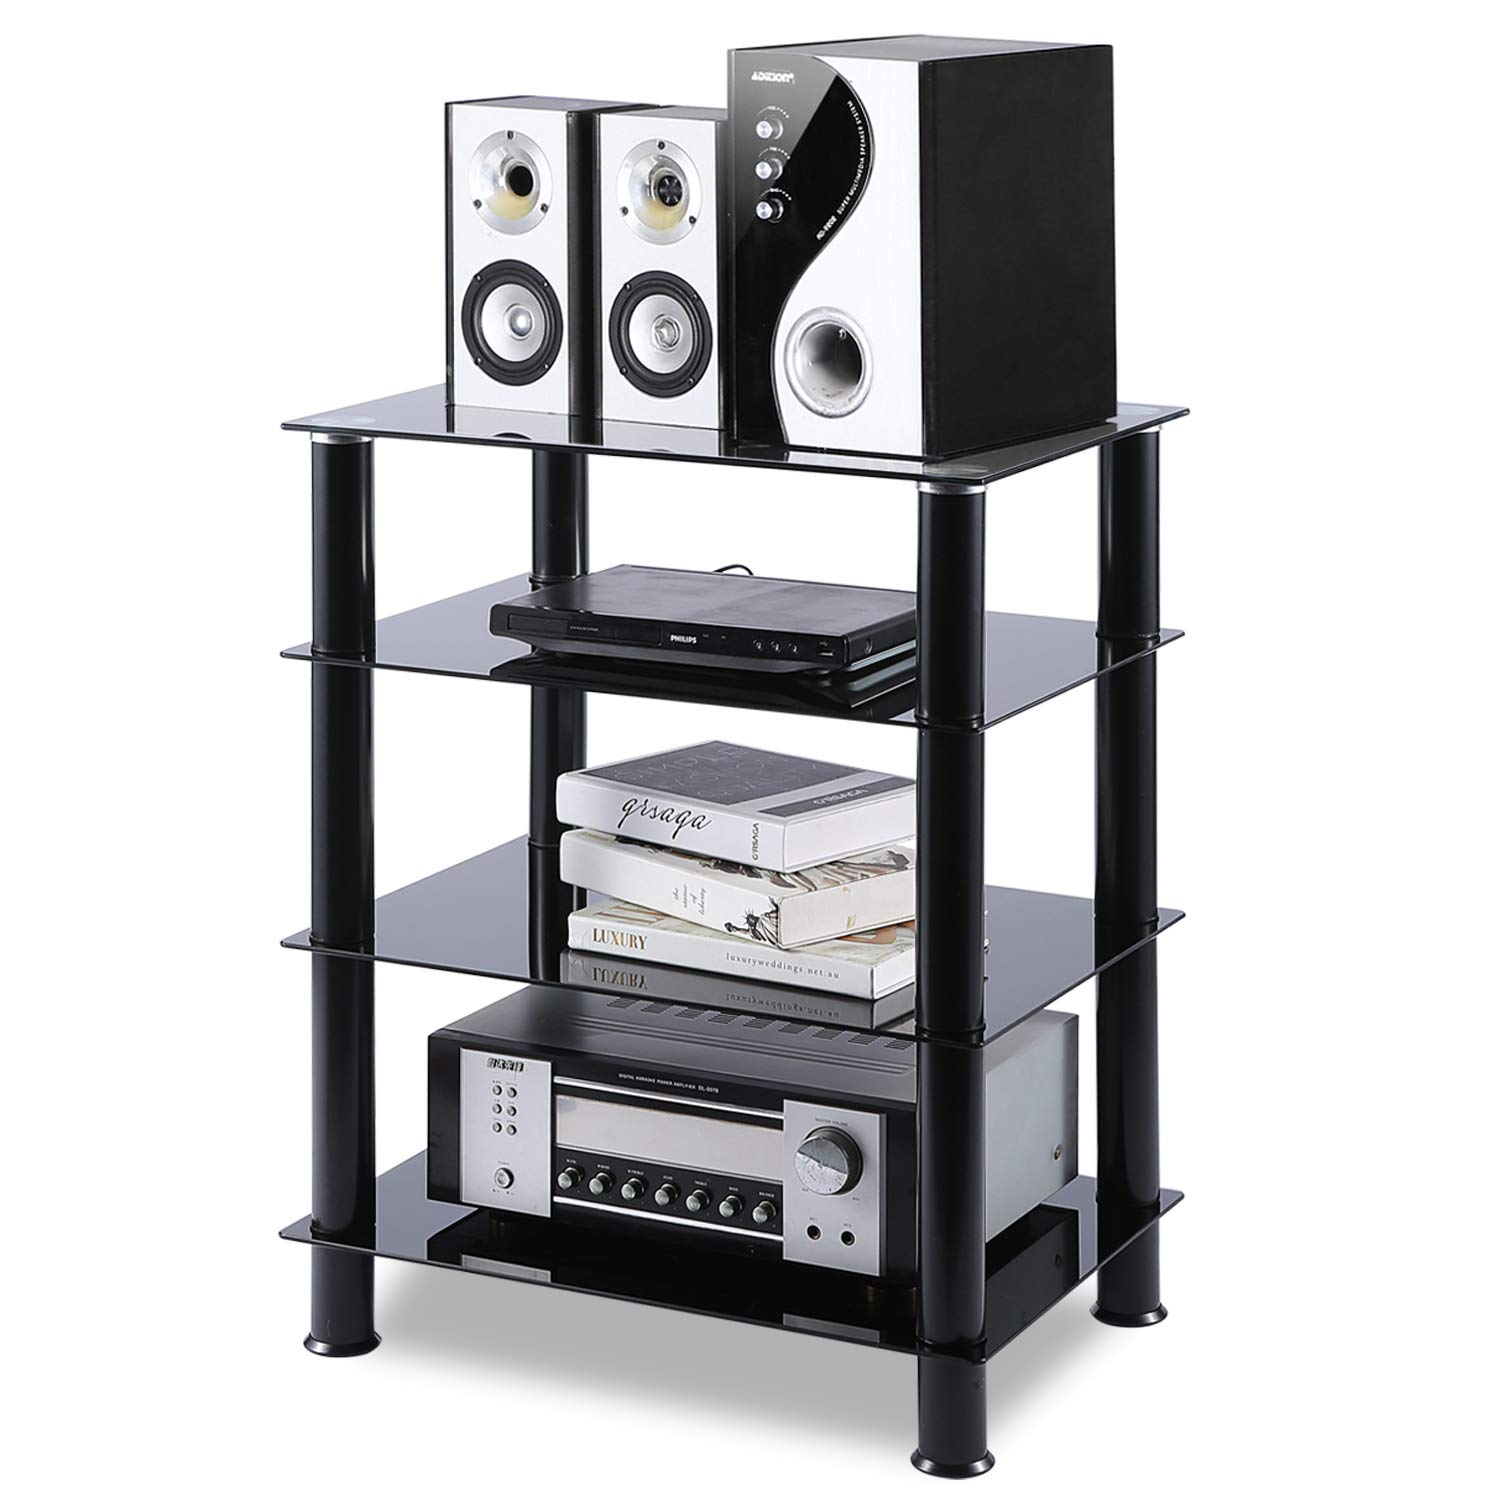 5Rcom 4 Tier Audio Rack Black Glass Component Media Stand Audio Video Tower Shelves, Storage for Xbox,Routers,Cable Boxes, Games Consoles, Hi-fis by 5Rcom